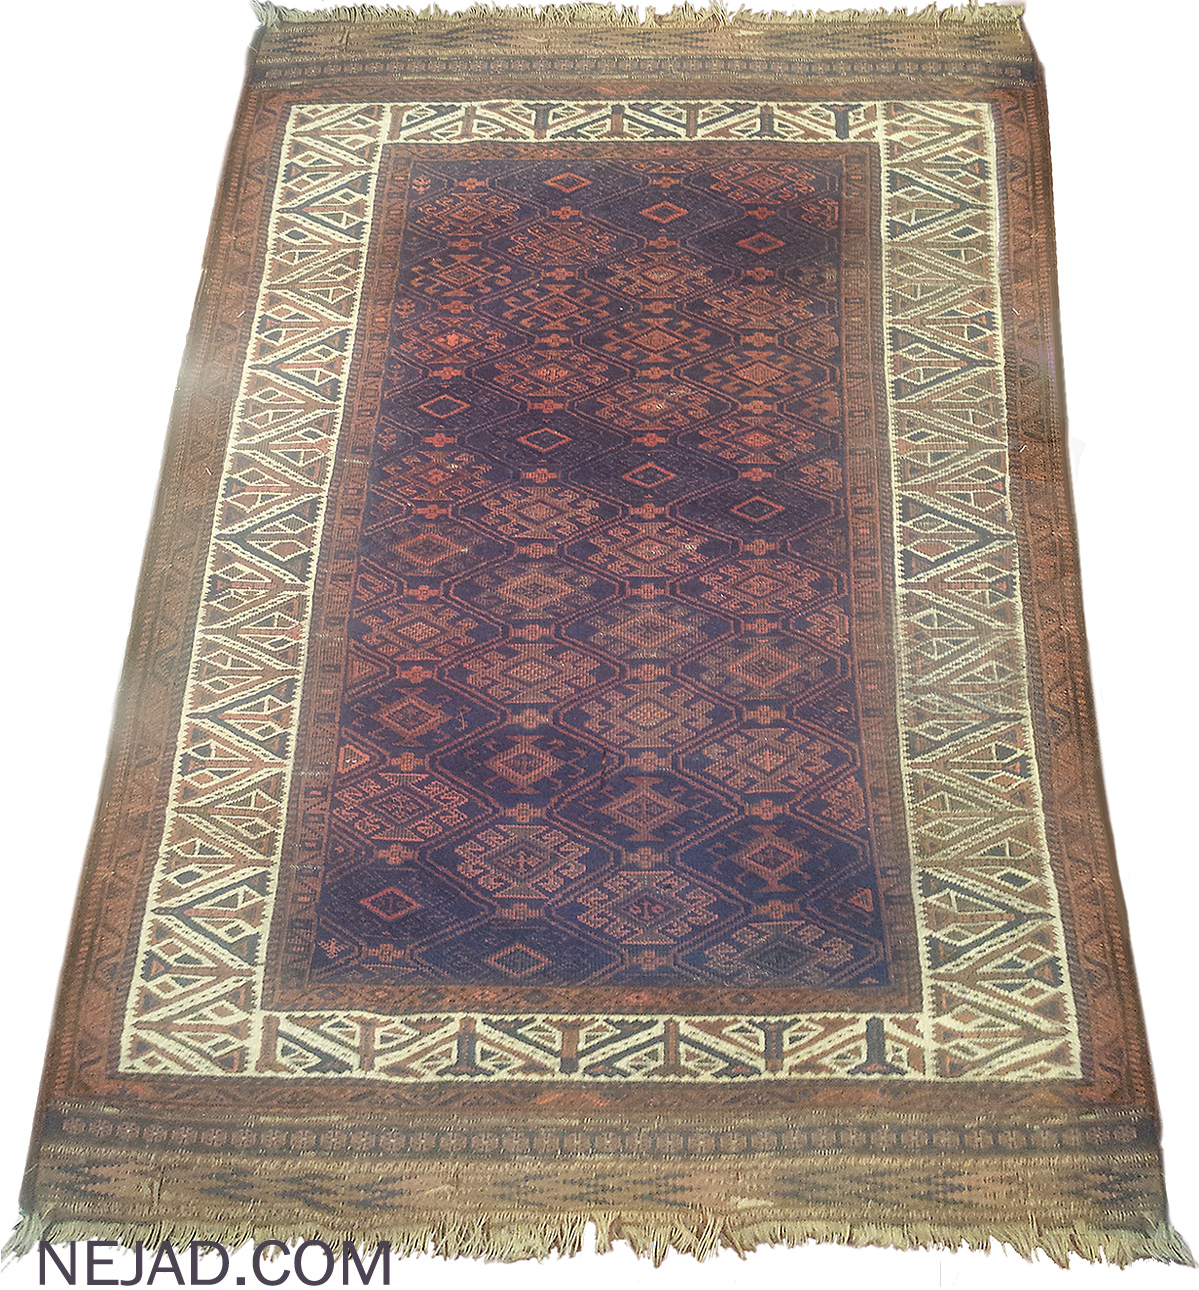 Antique Persian Beluch Rug - Nejad Rugs #100081